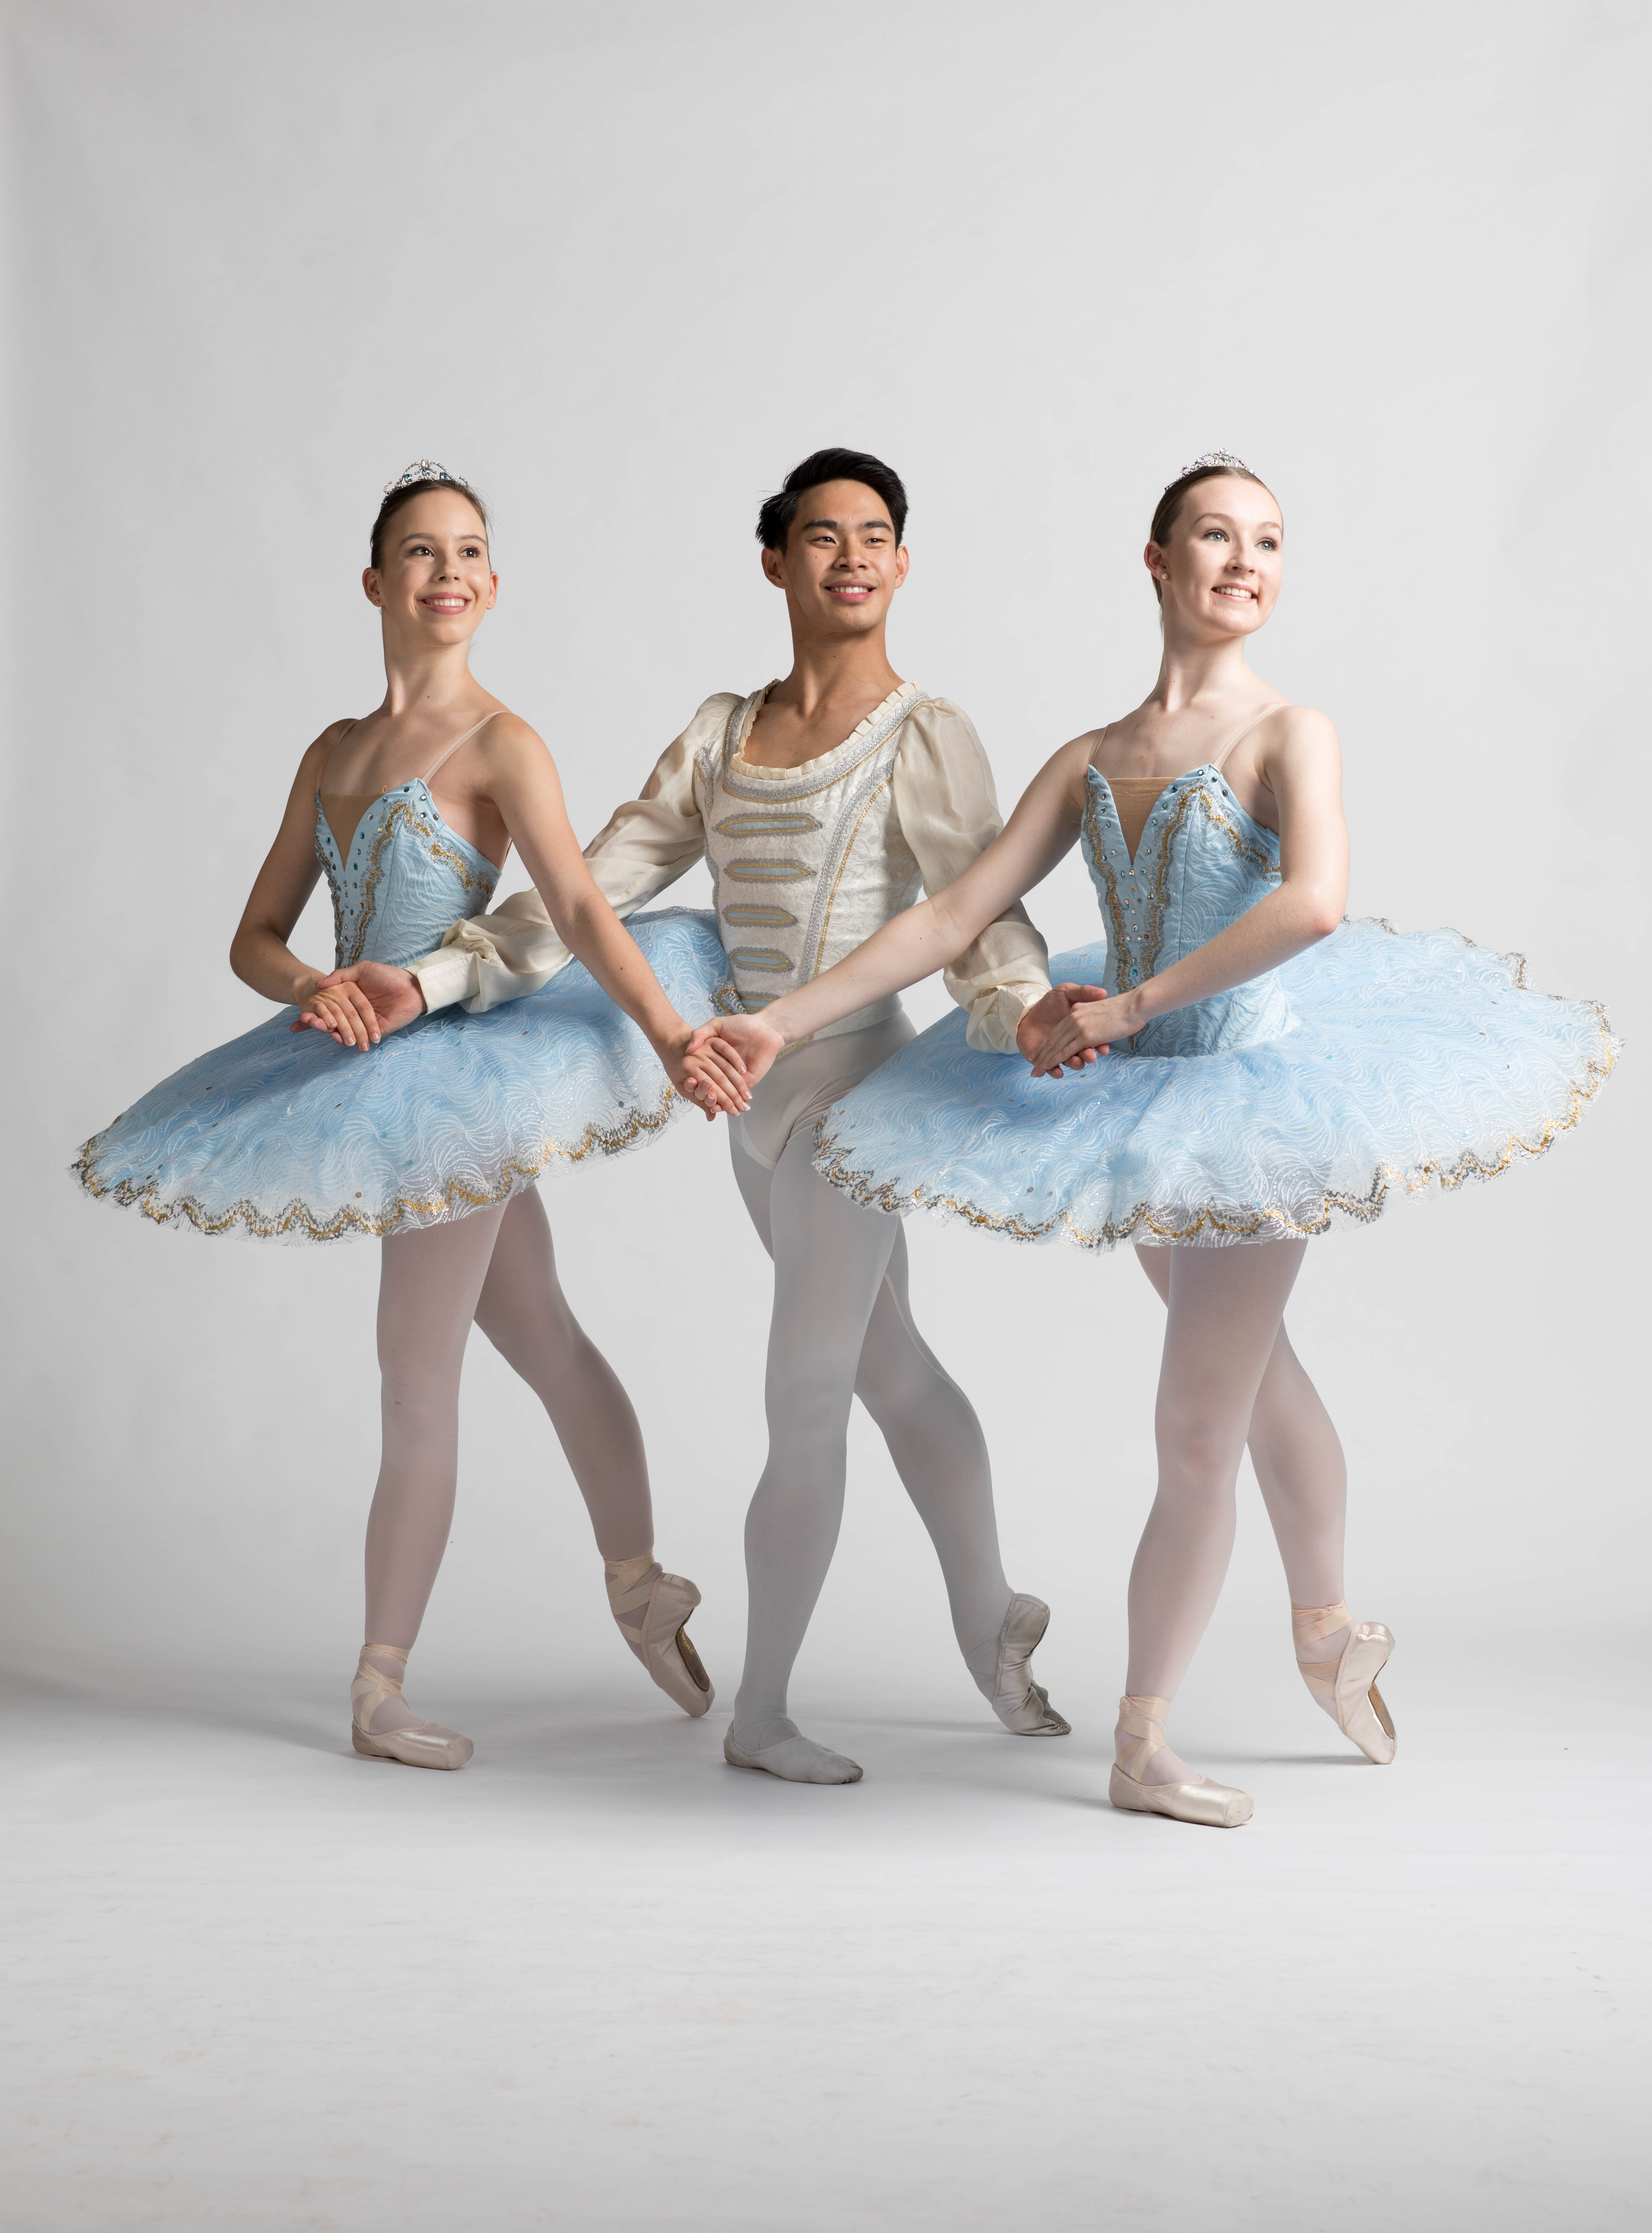 Local dancer stepping up to big league ballet | Local News